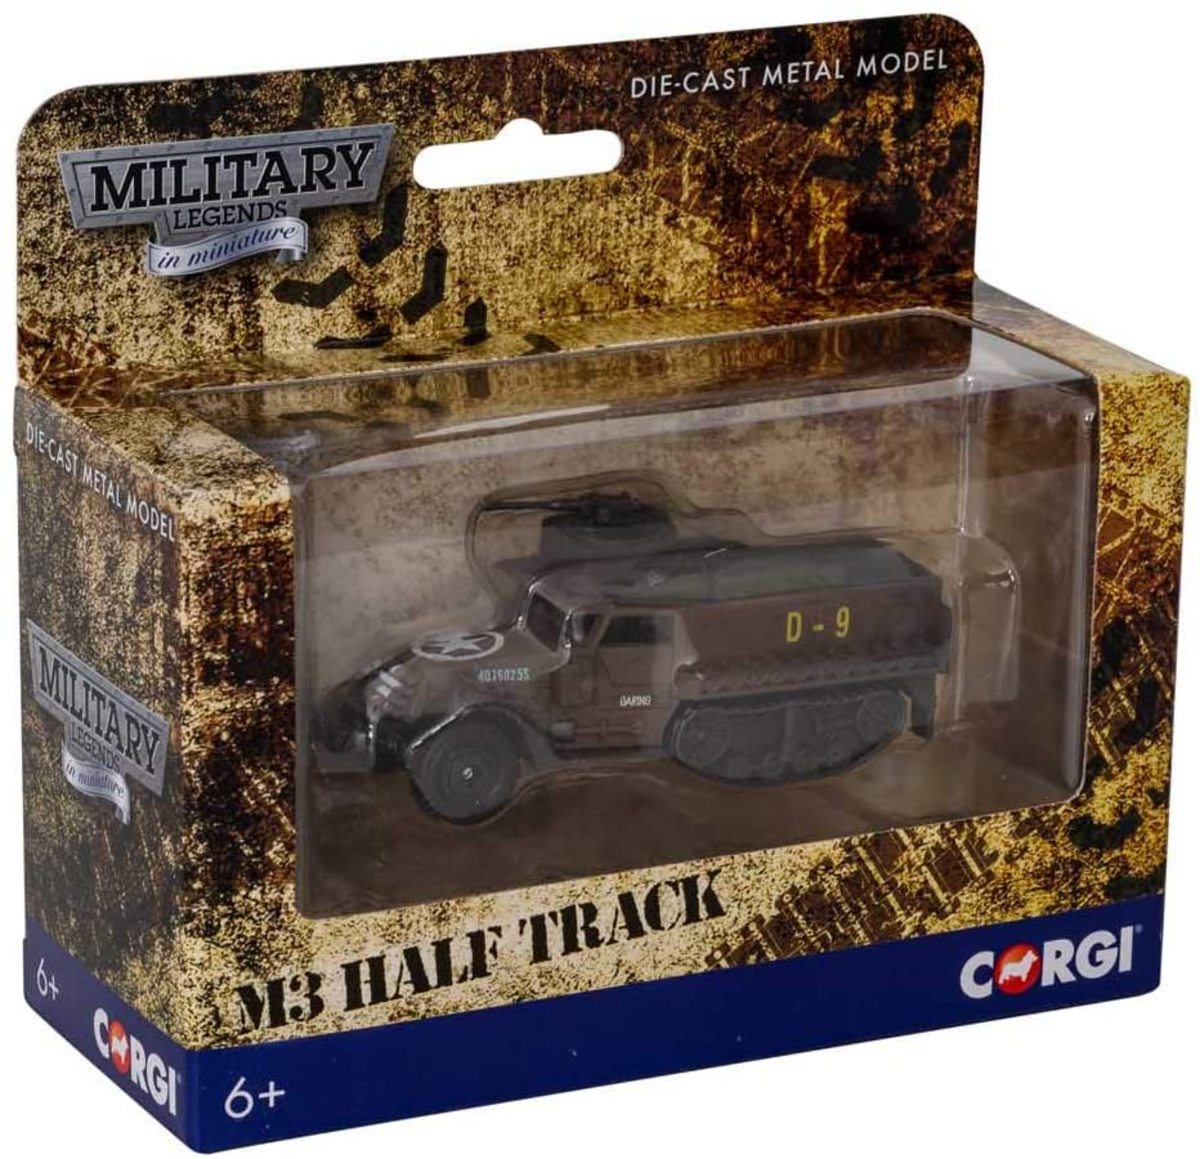 Who doesn't love a good half-track? This Corgi diecast is available for about $13.